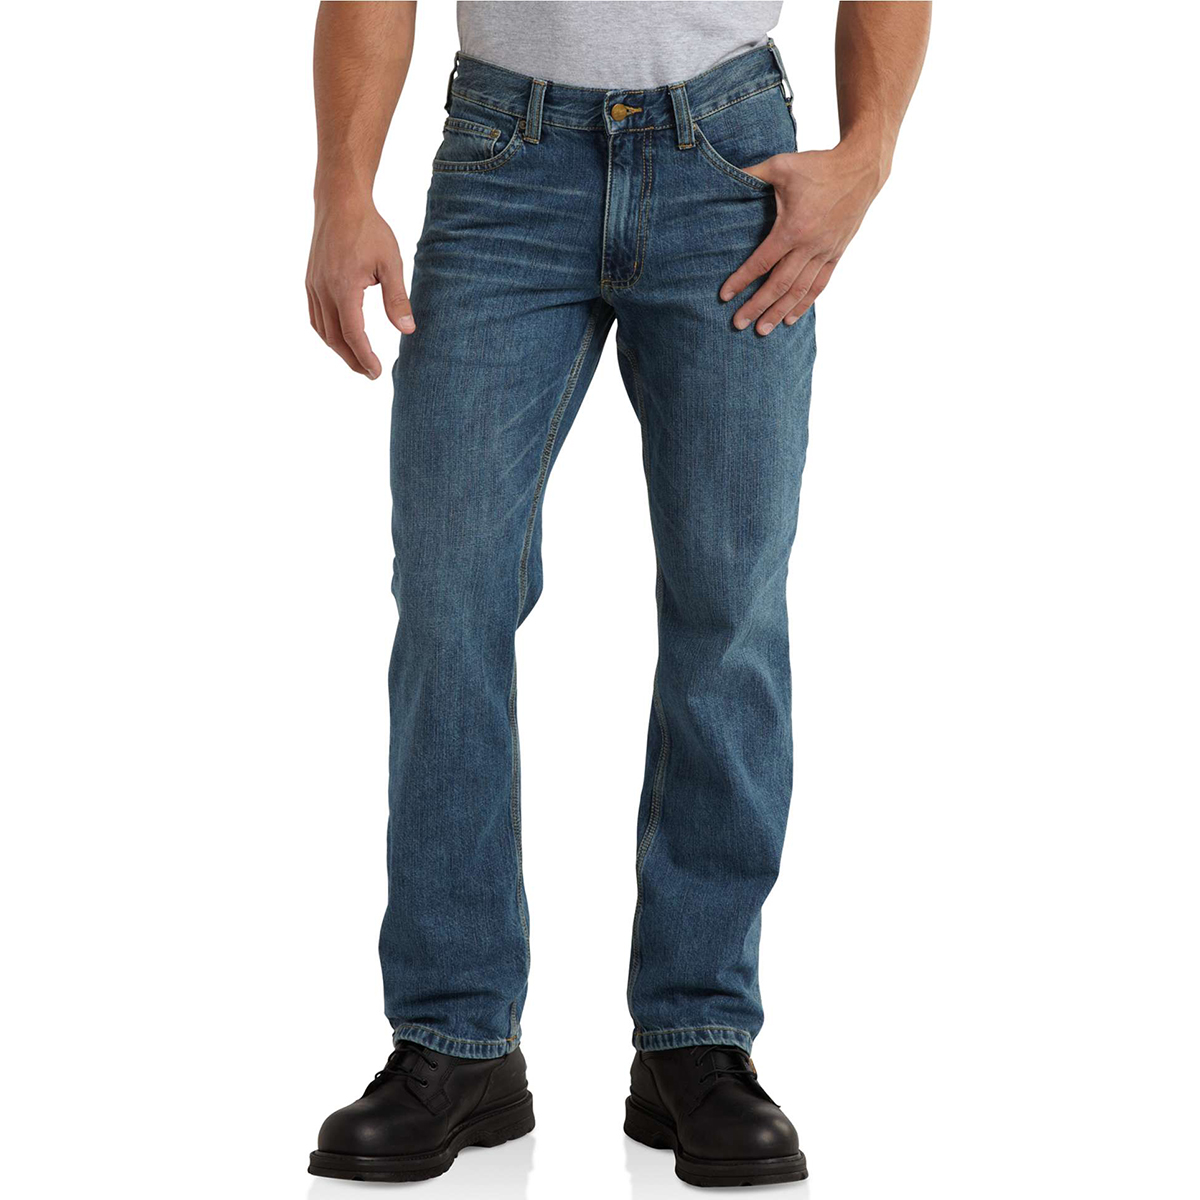 Get The Carhartt Men S Series 1889 Relaxed Fit Straight Leg Jean From Eastern Mountain Sports Now Ibt Shop